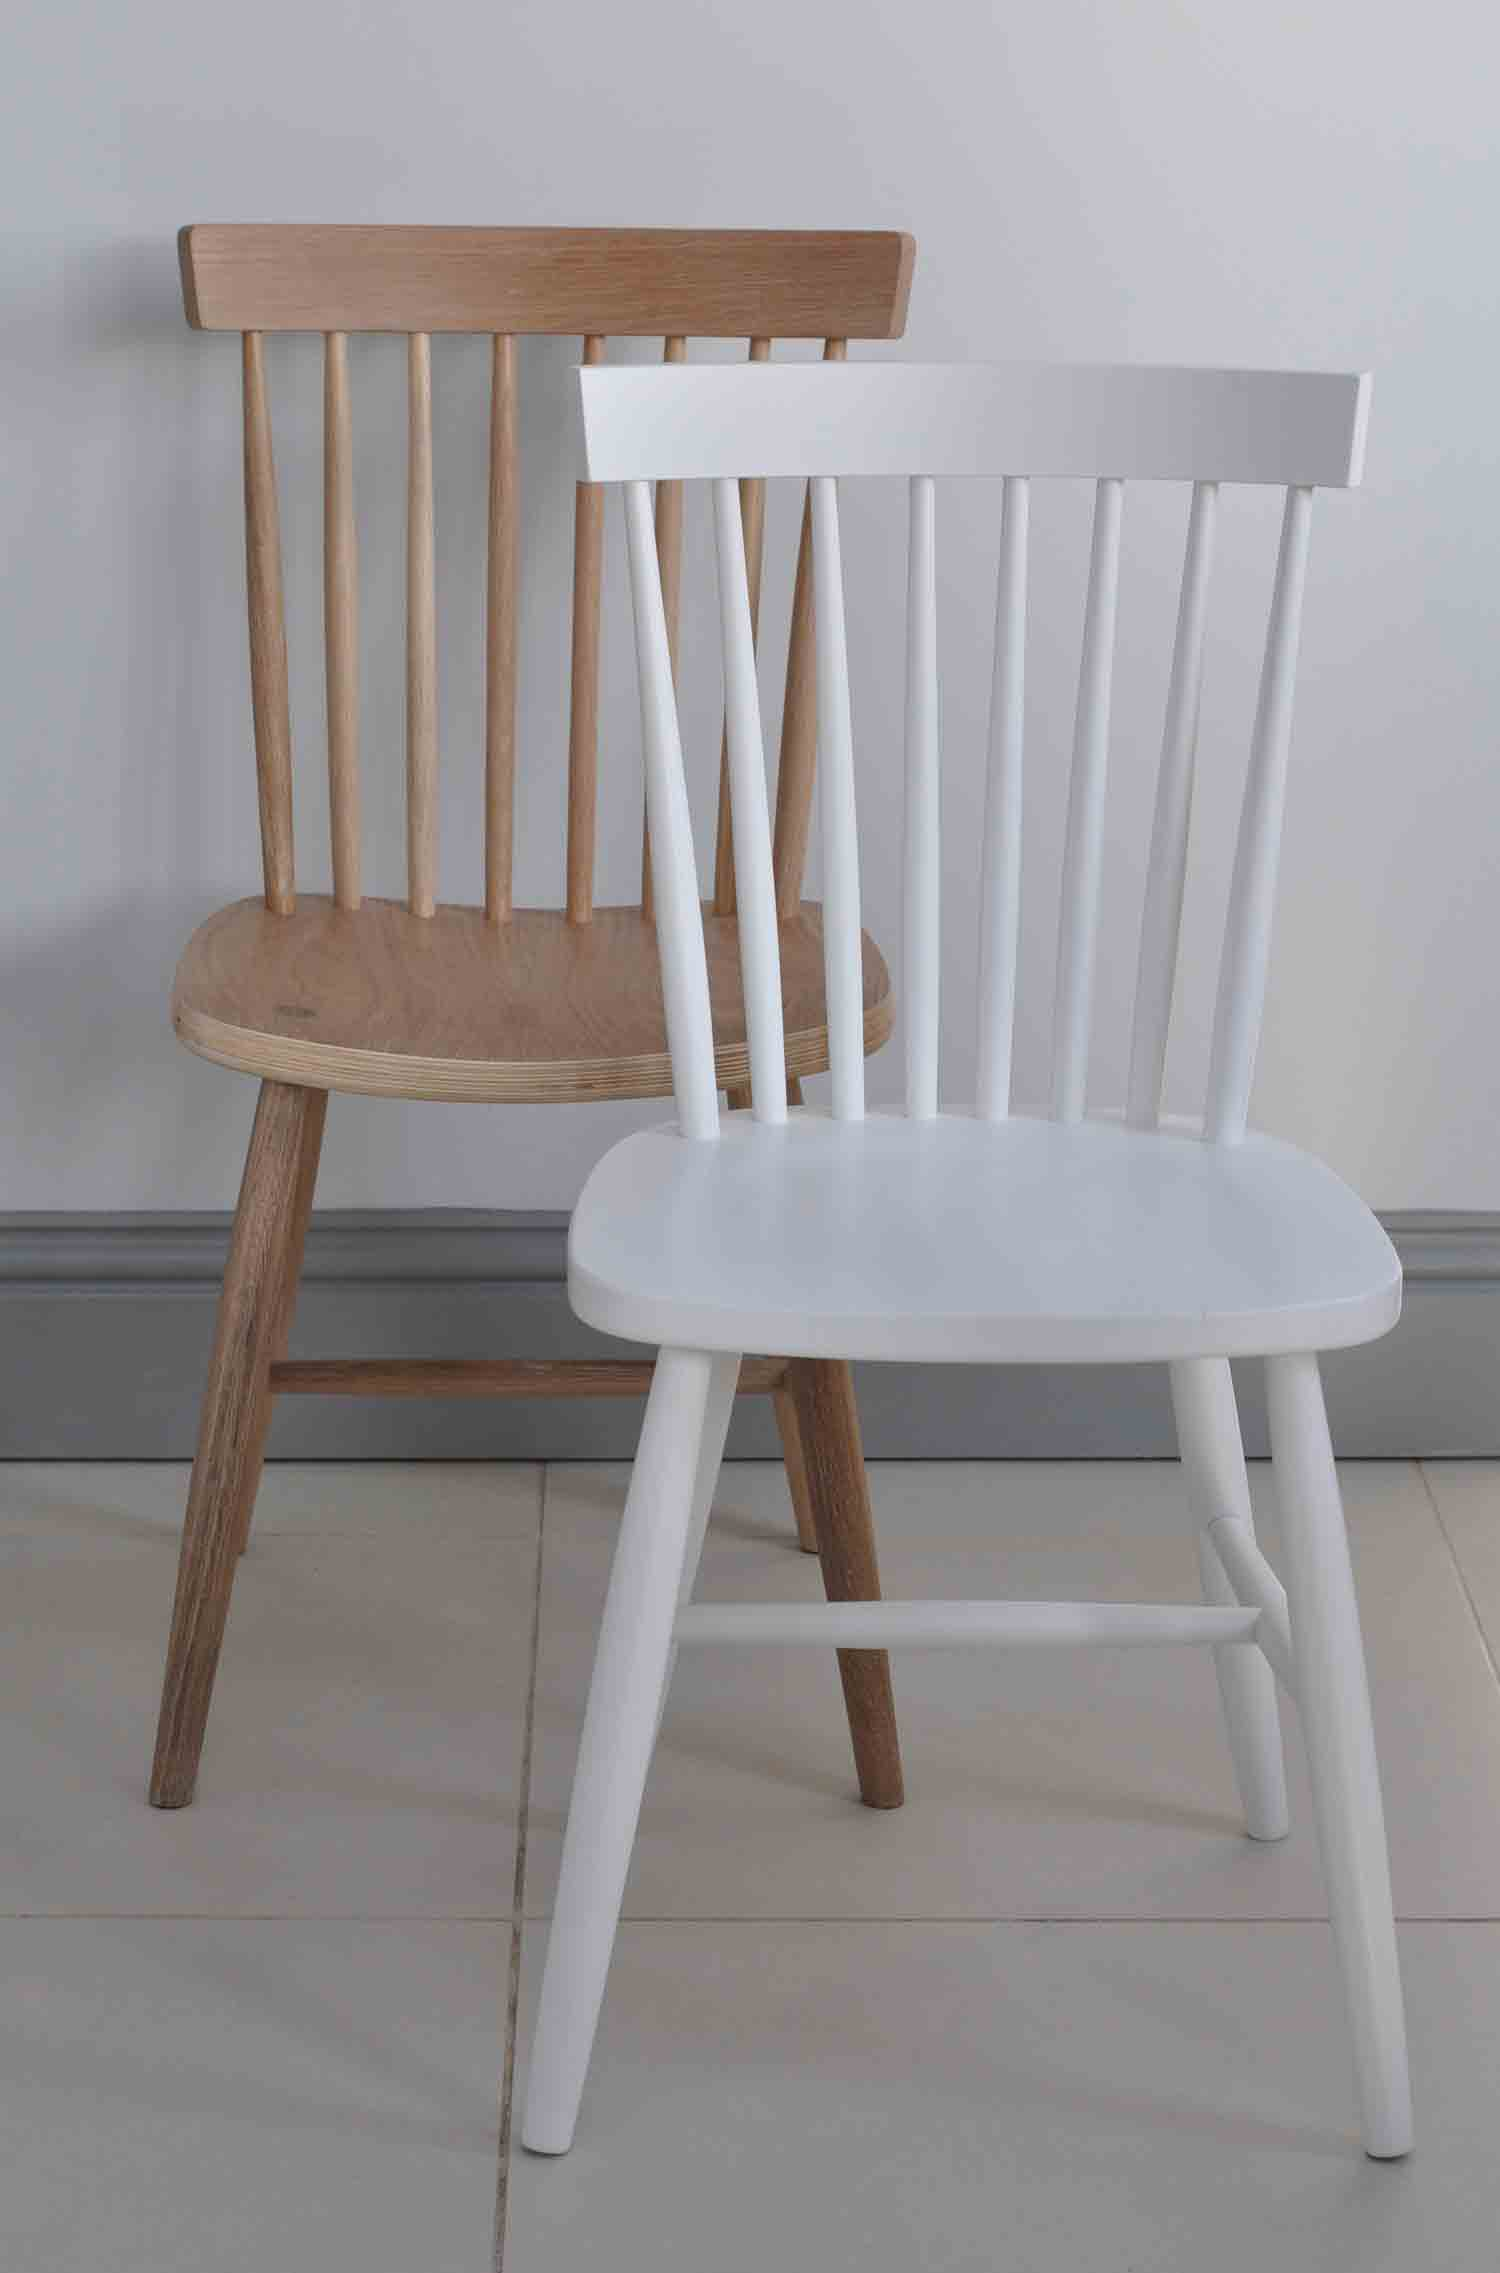 Spindle Dining Chairs Oxford Spindle Back Dining Chair White Painted Or